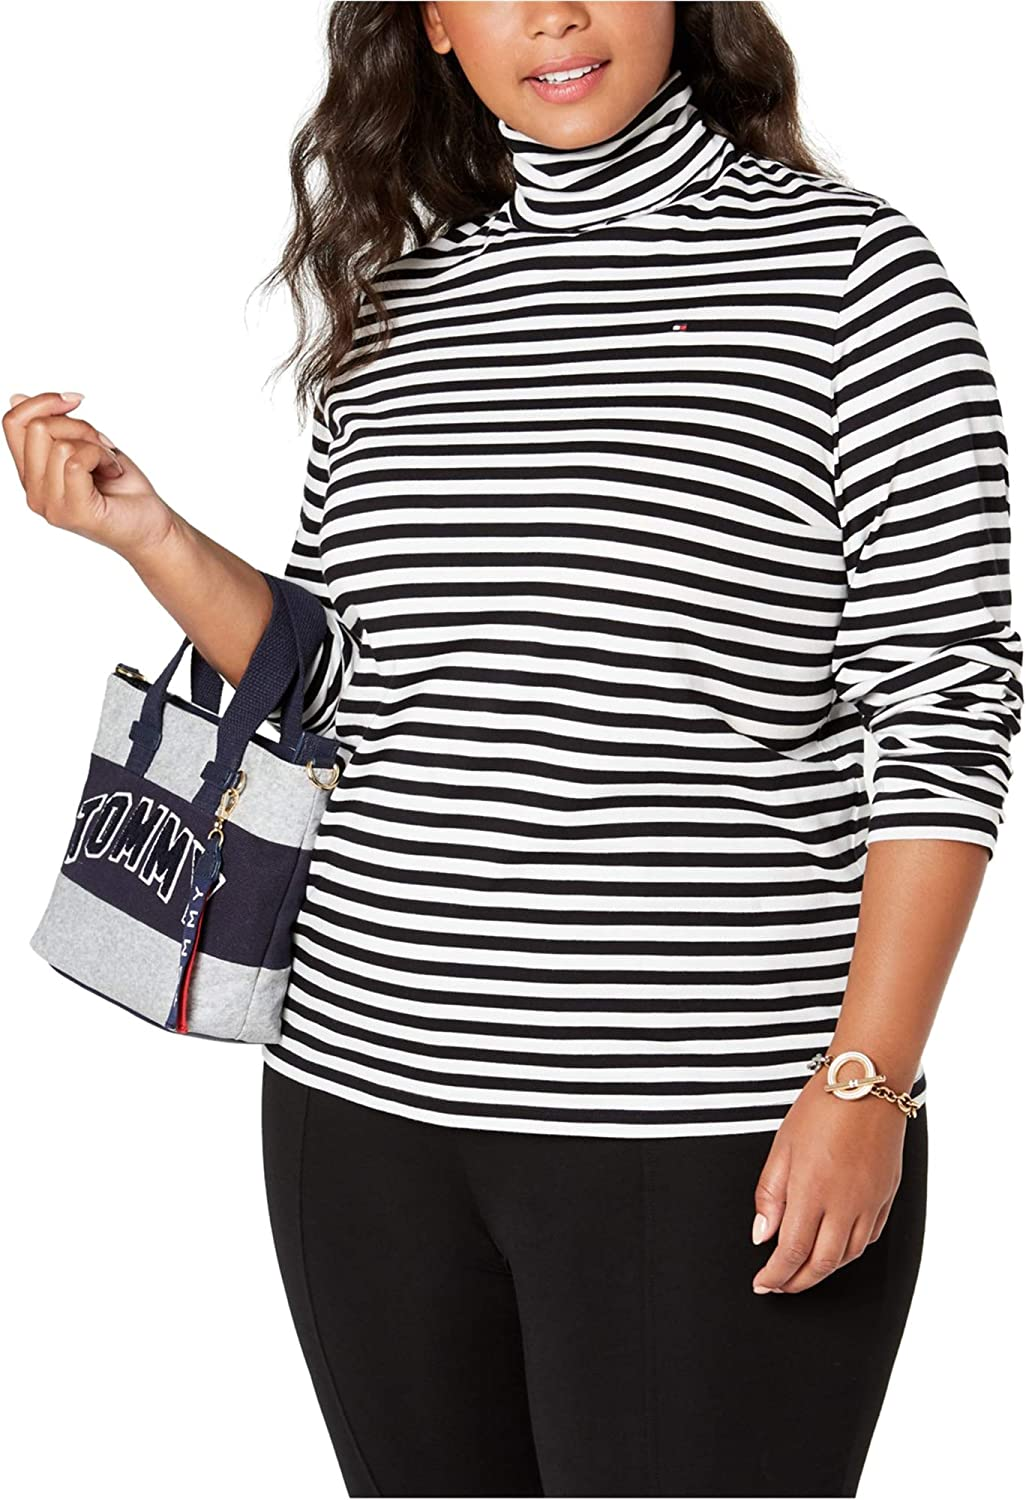 Tommy Hilfiger Womens Striped Pullover Blouse